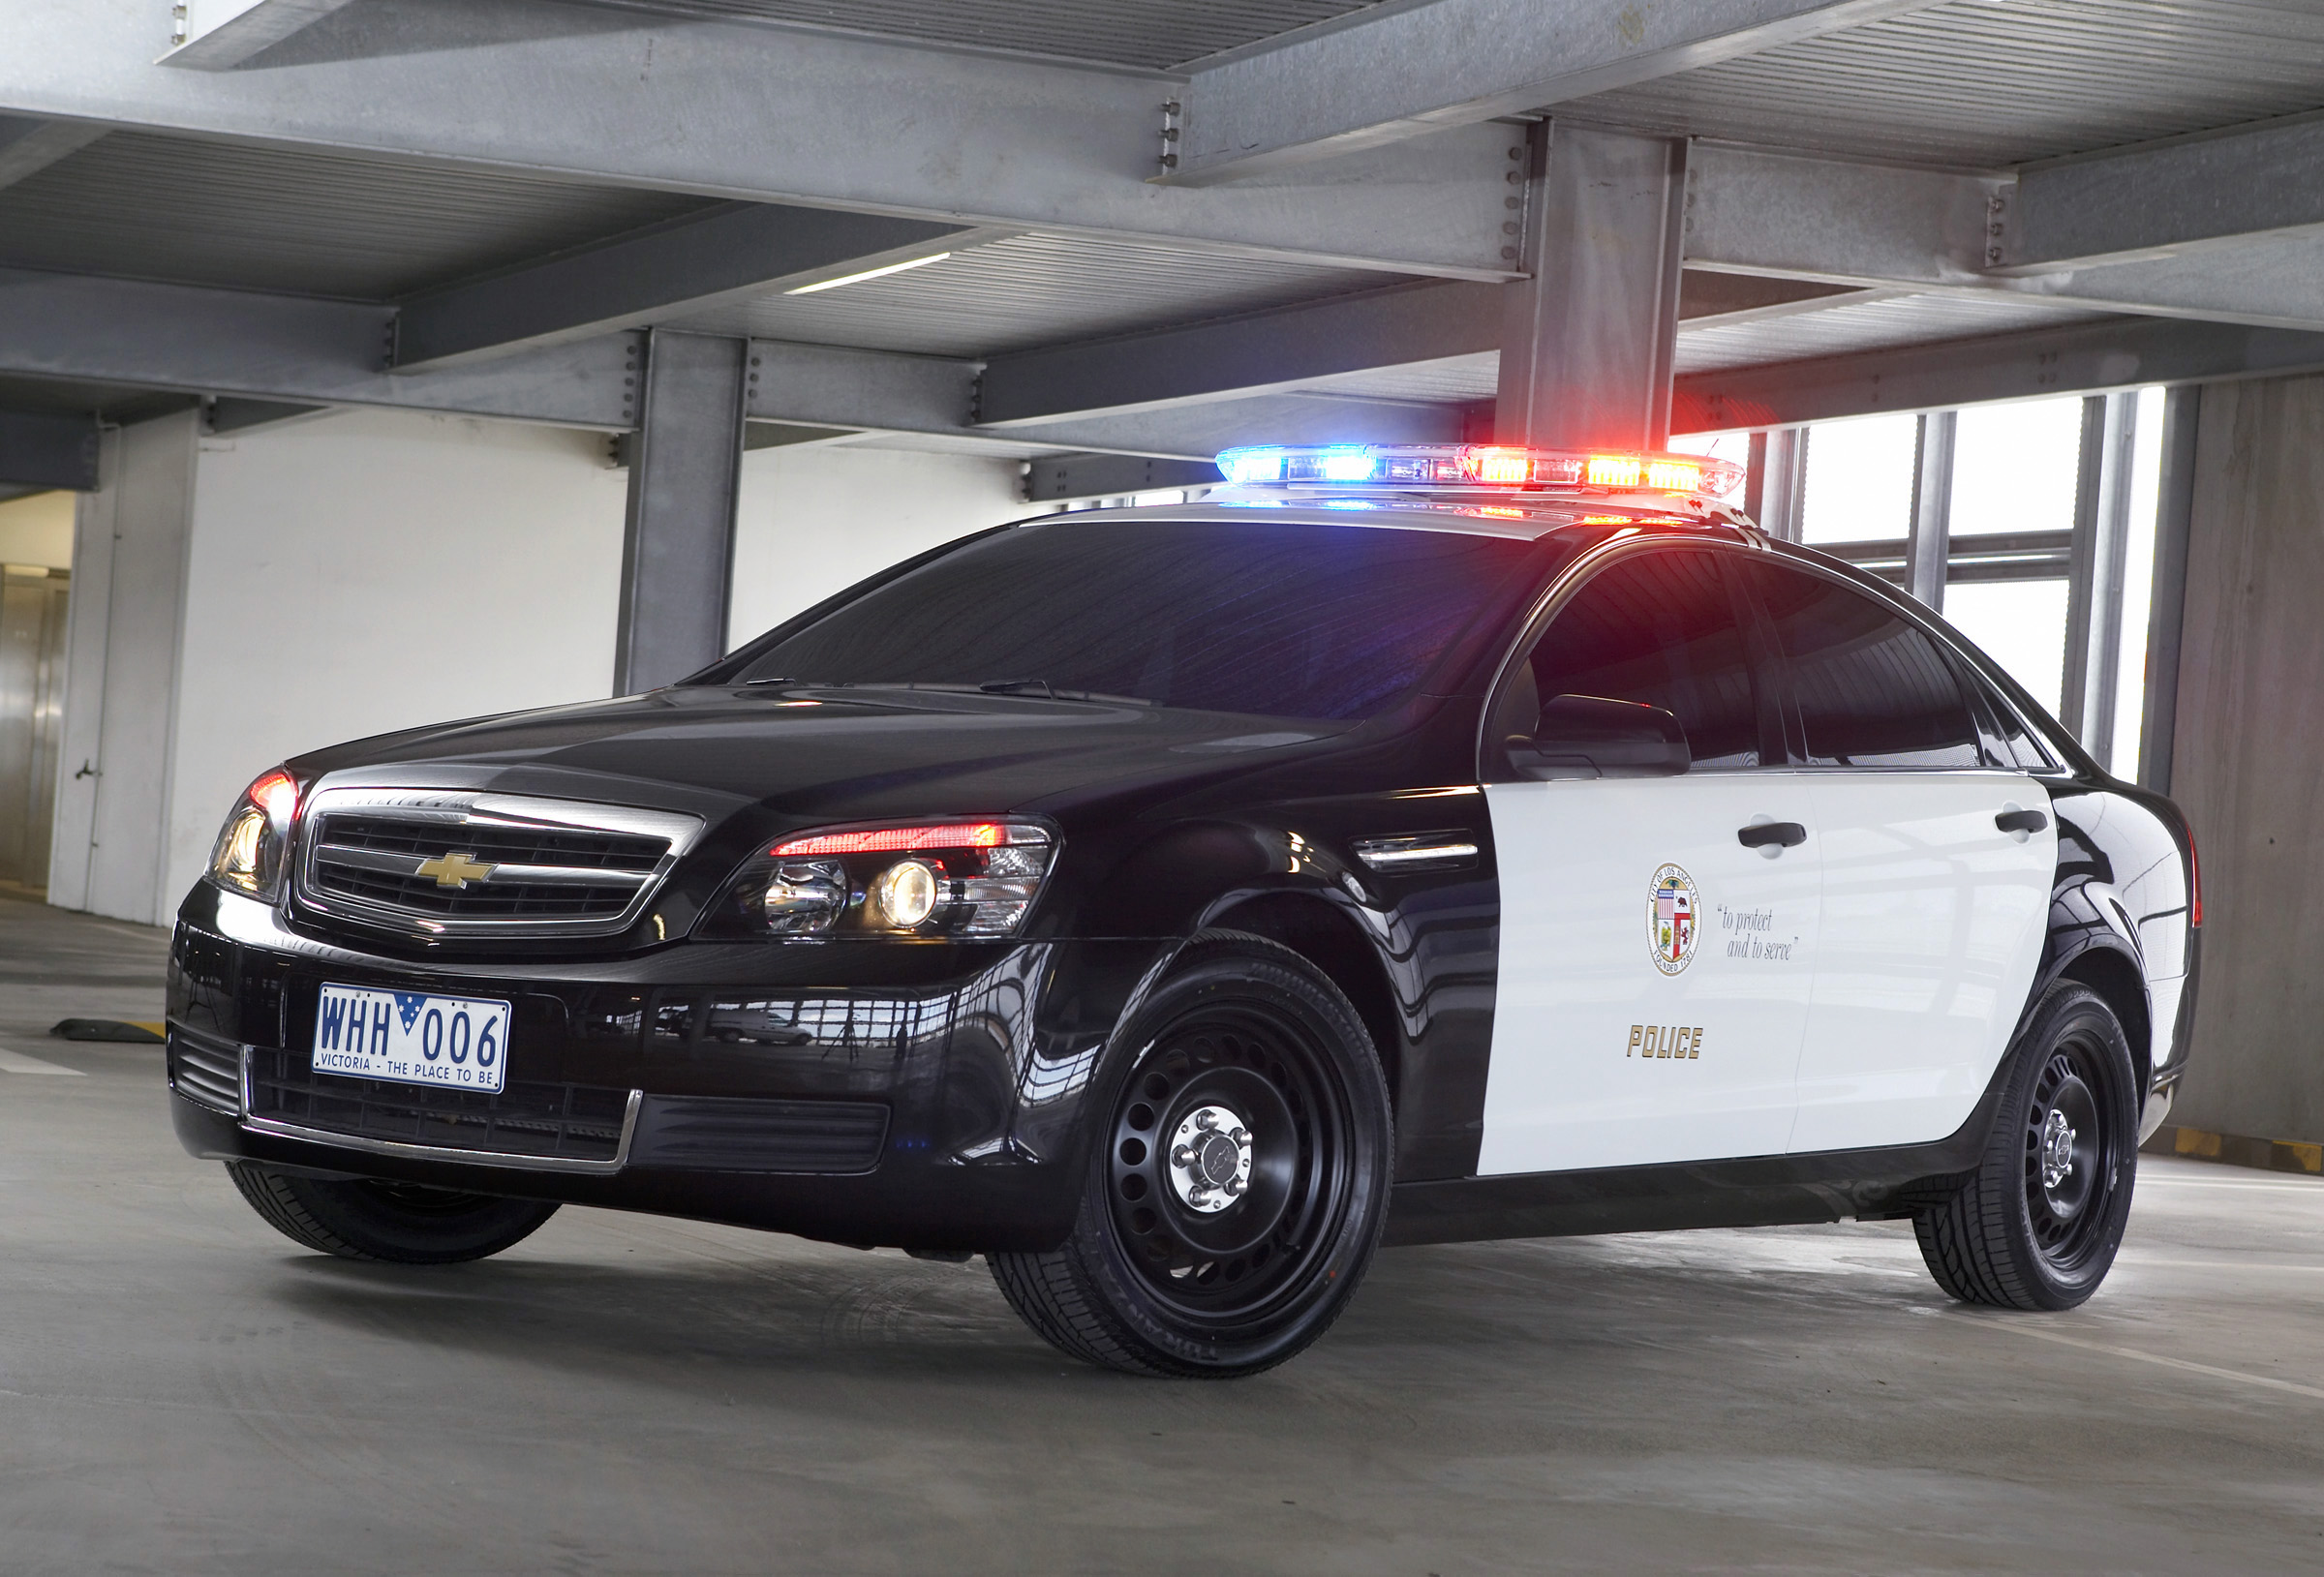 Chevrolet caprice is re born in the us as a police car only chevrolet caprice police patrol vehicle publicscrutiny Image collections